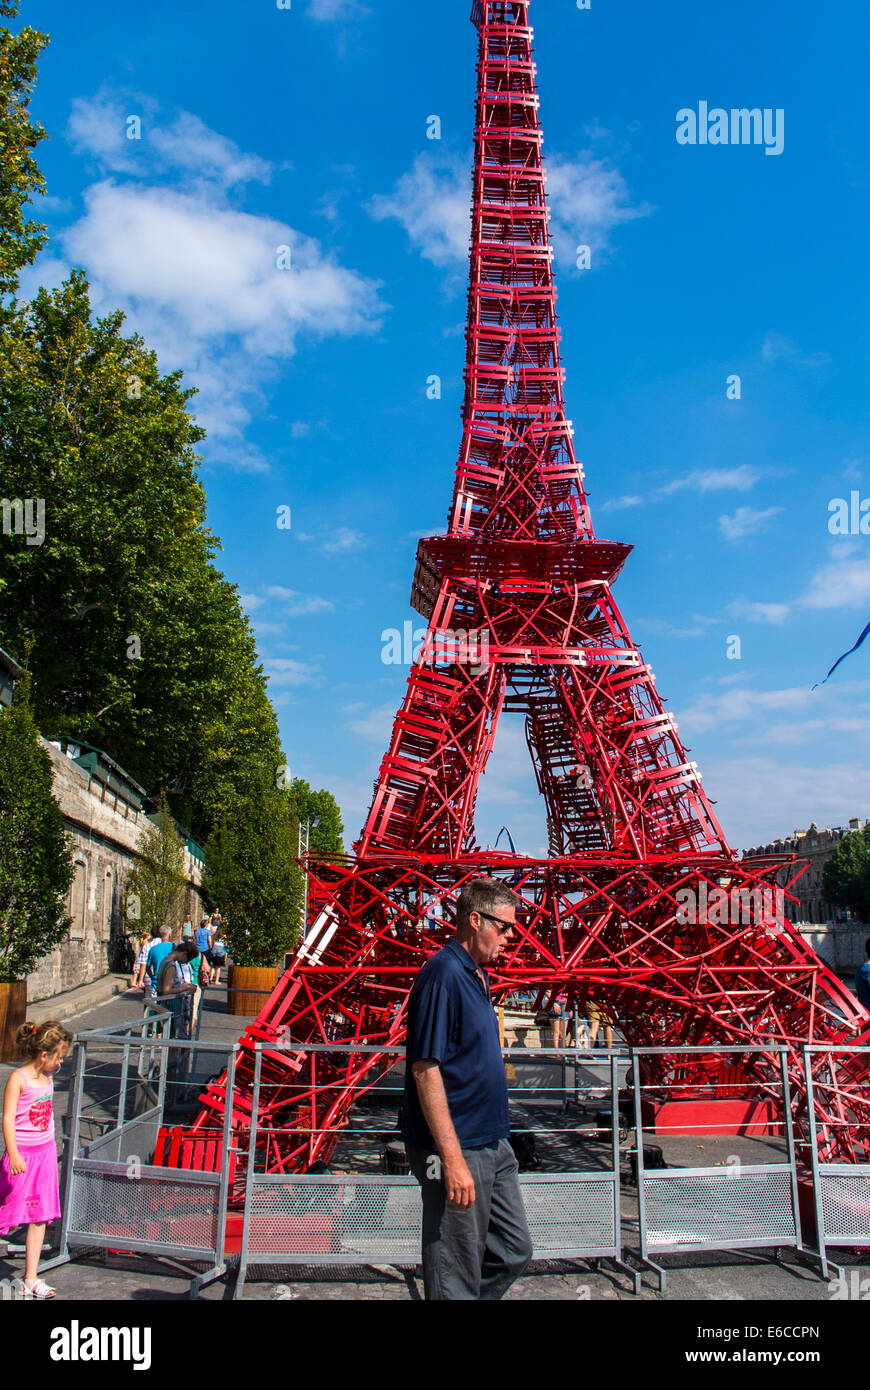 Paris, France, Tourists enjoying Public Events, 'Paris Plages', Urban Beach, Eiffel Tower Installation on - Stock Image